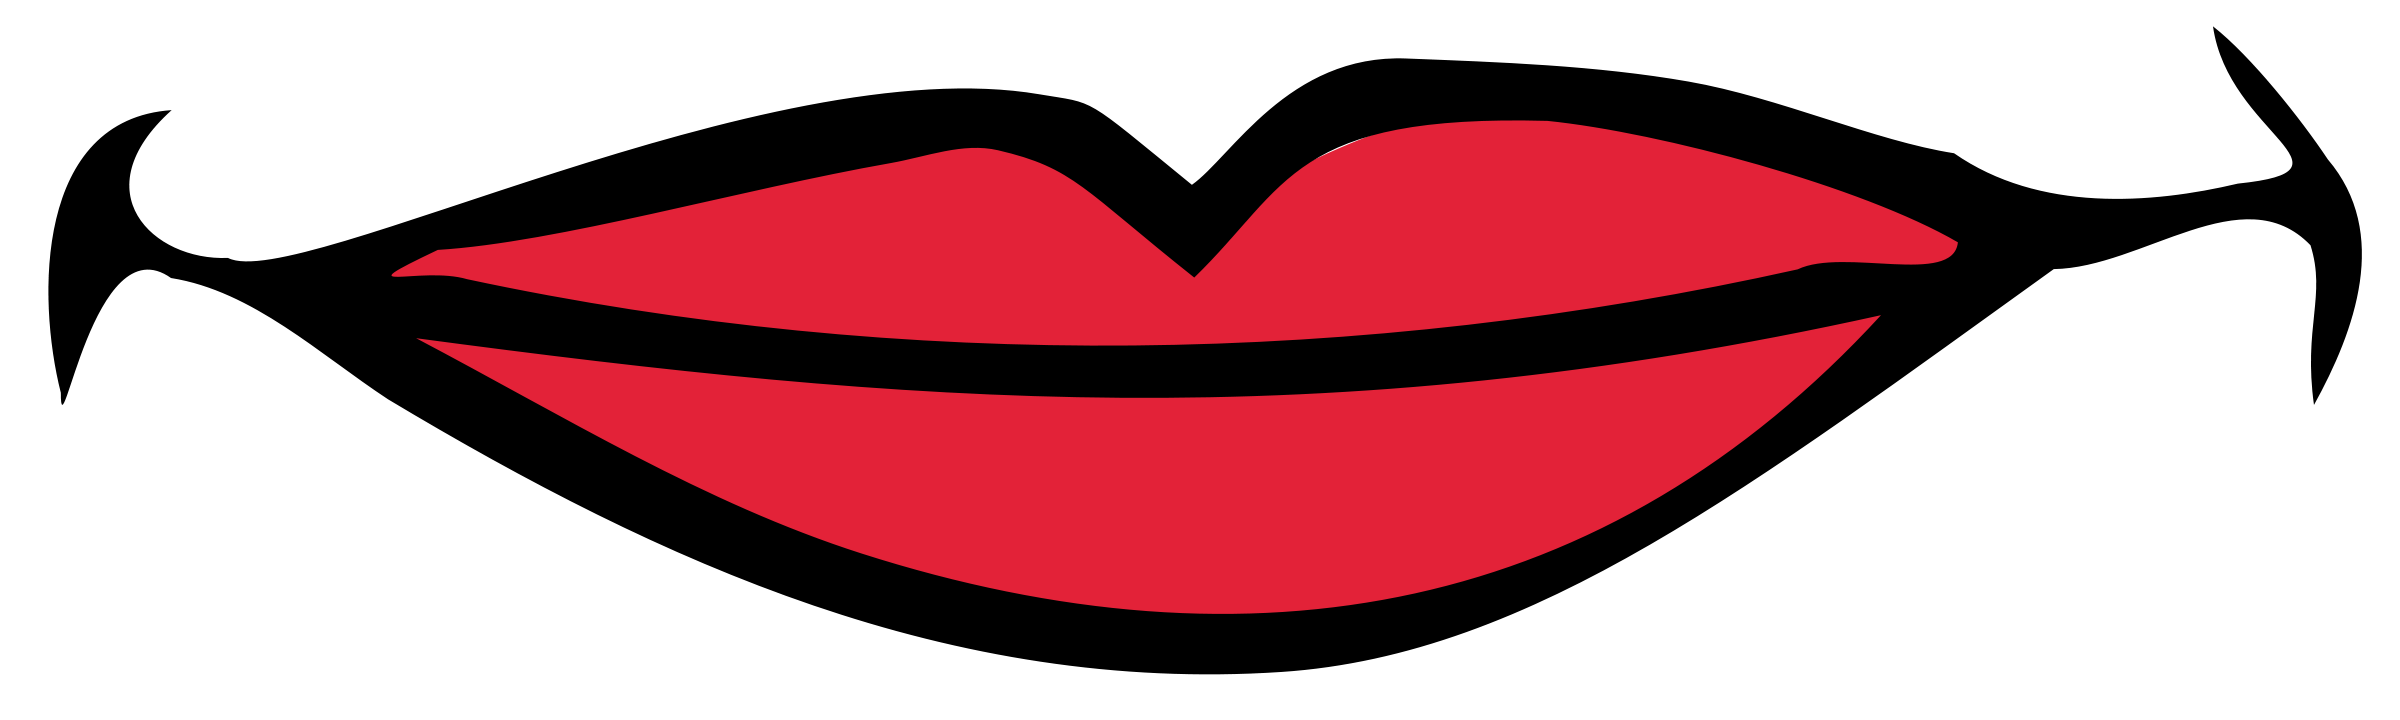 Smile Lips Clipart | Clipart Panda - Free Clipart Images